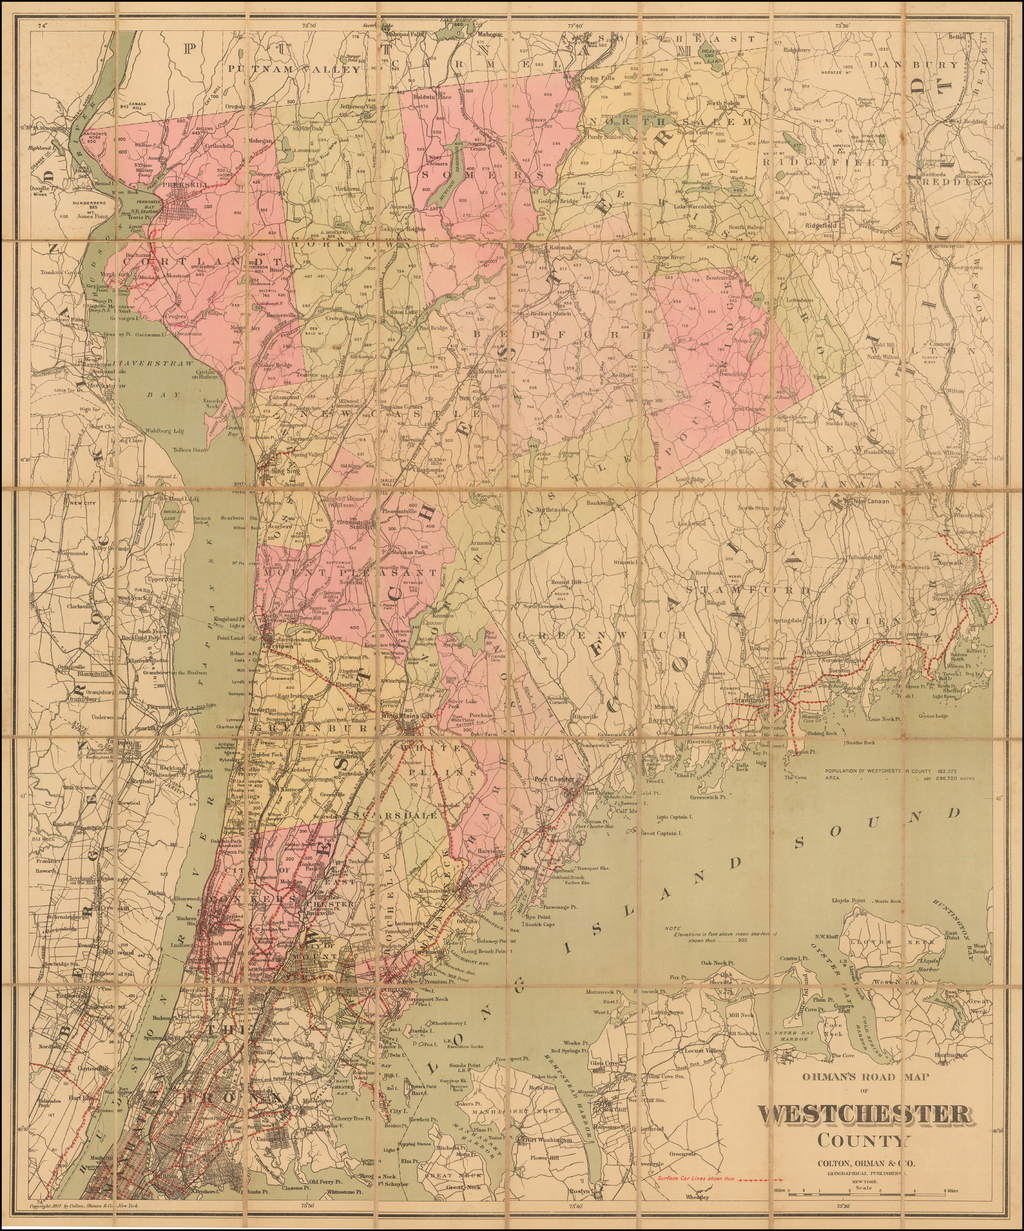 Ohman's Road Map of Westchester County . . . 1901 By Colton Ohman & Co.